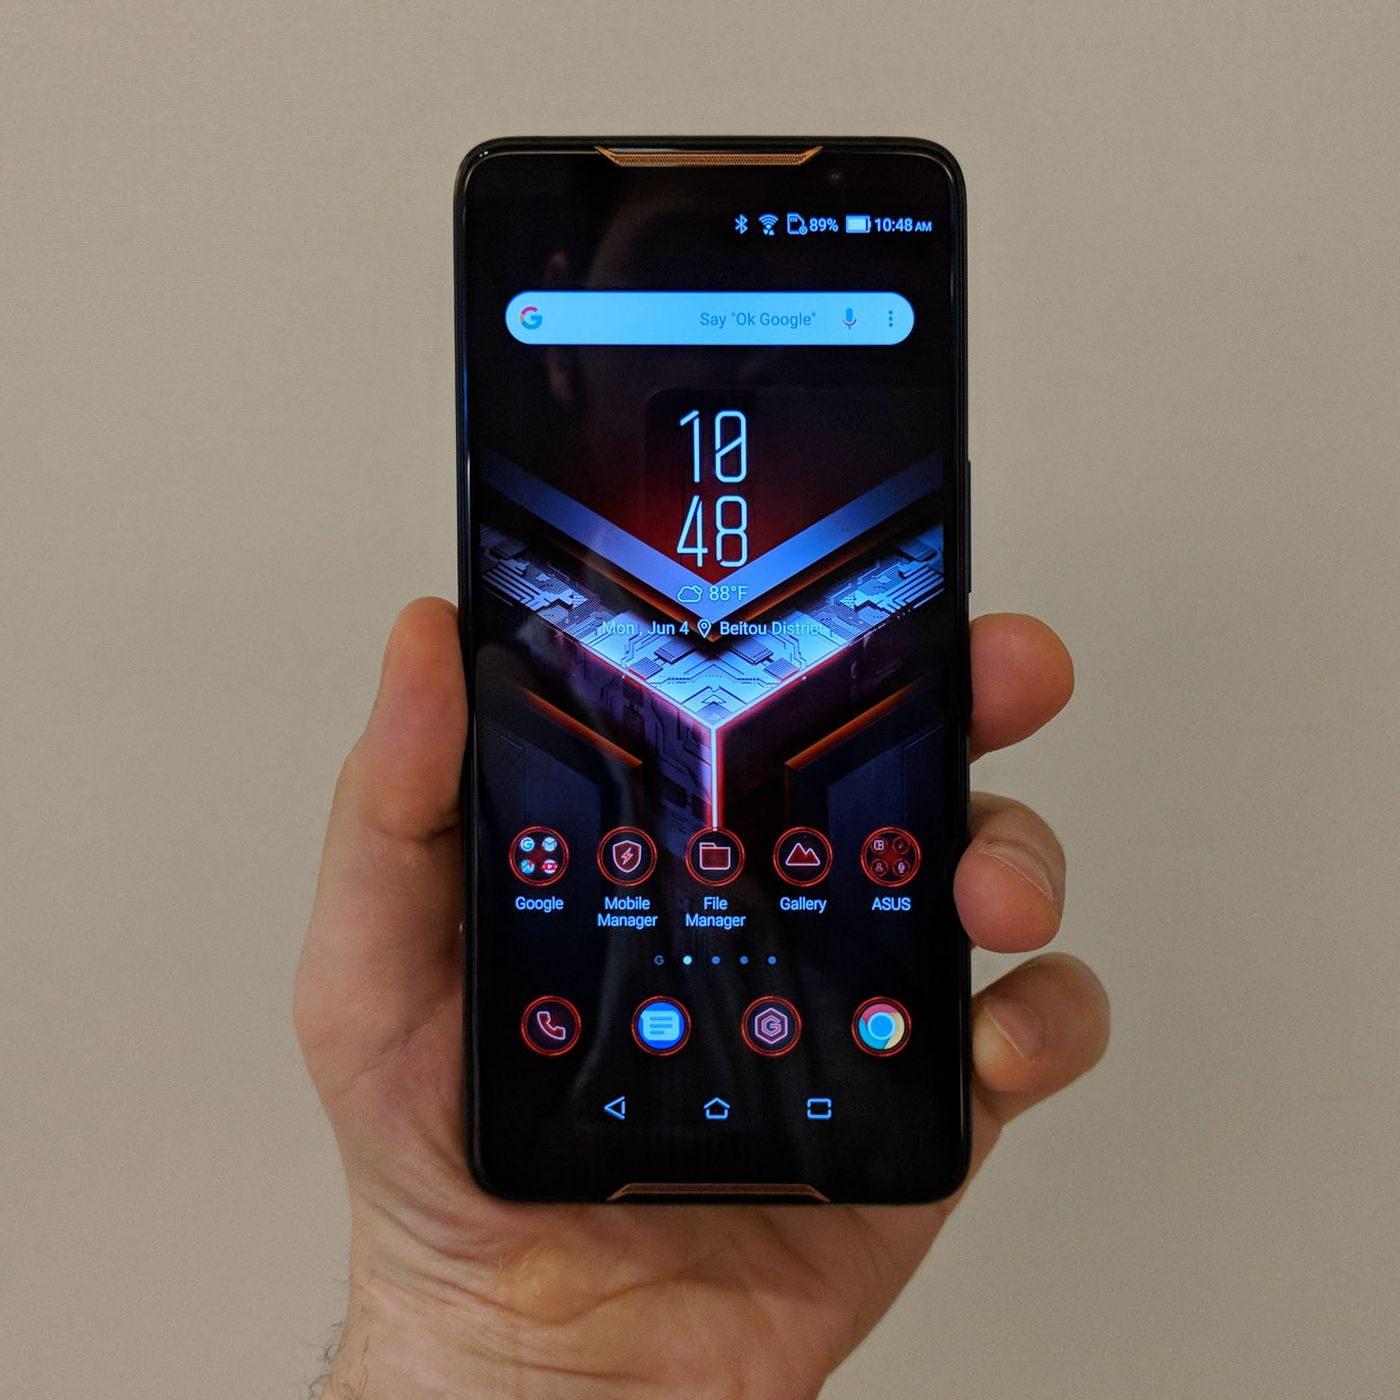 Asus' gaming phone will be available to preorder in the US